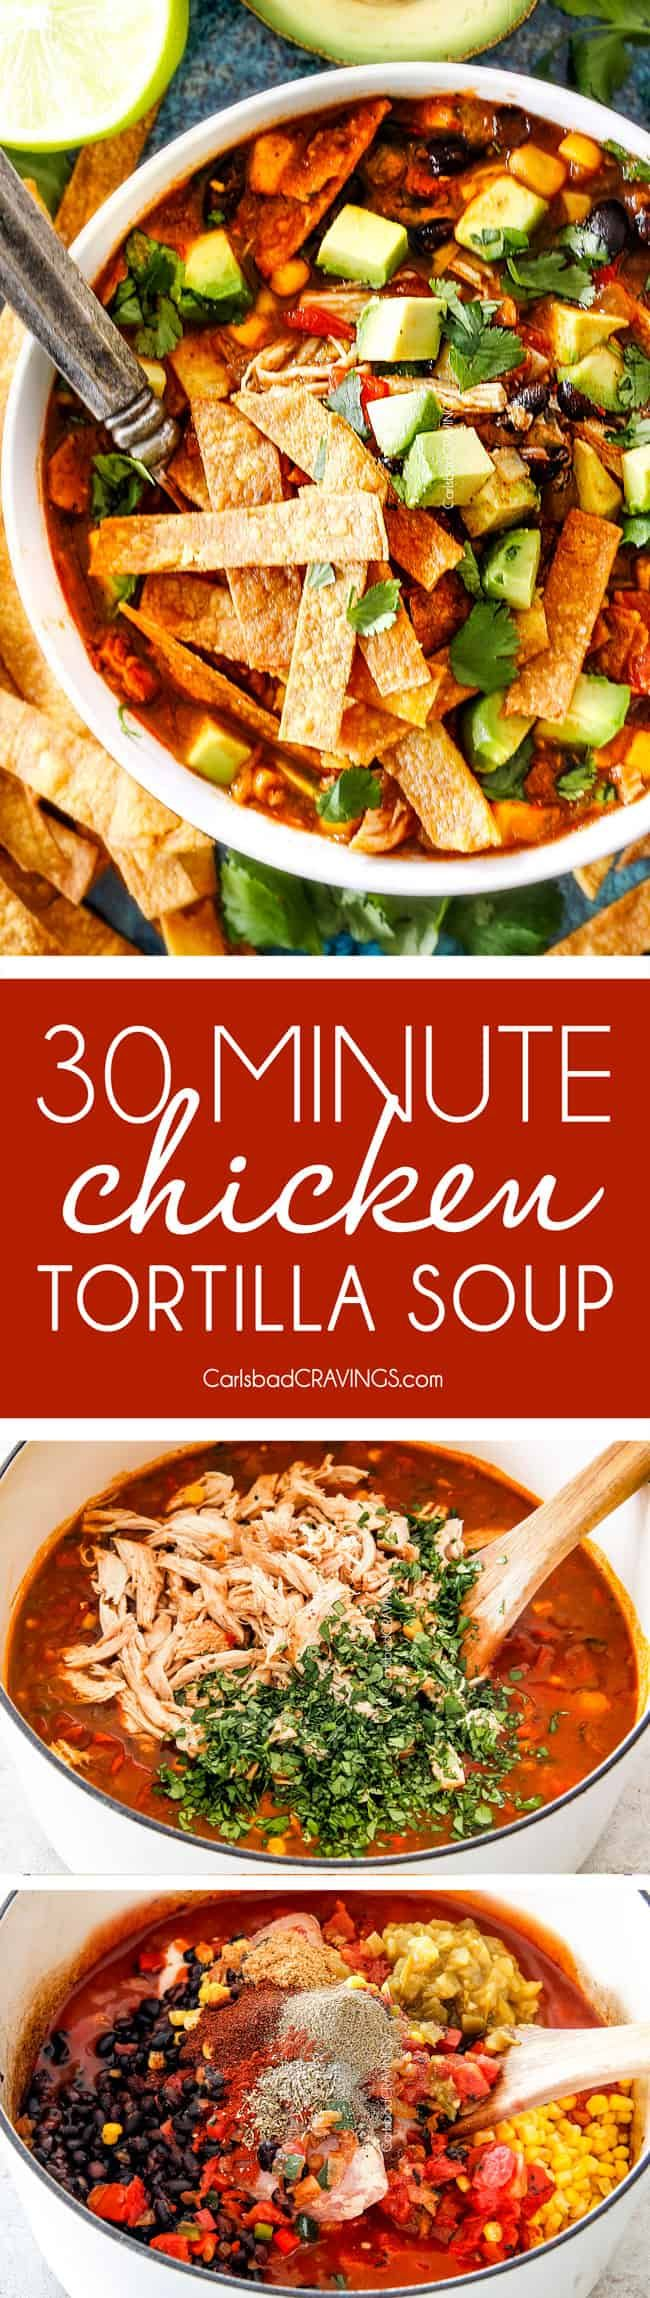 Easy 30-Minute Homemade Chicken Tortilla Soup that tastes better than any restaurant!It's accidentally healthy, easy to double/triple for a crowd, freezer friendly and tastes like it's been simmering for hours but on your table in 30 Minutes! via @carlsbadcraving